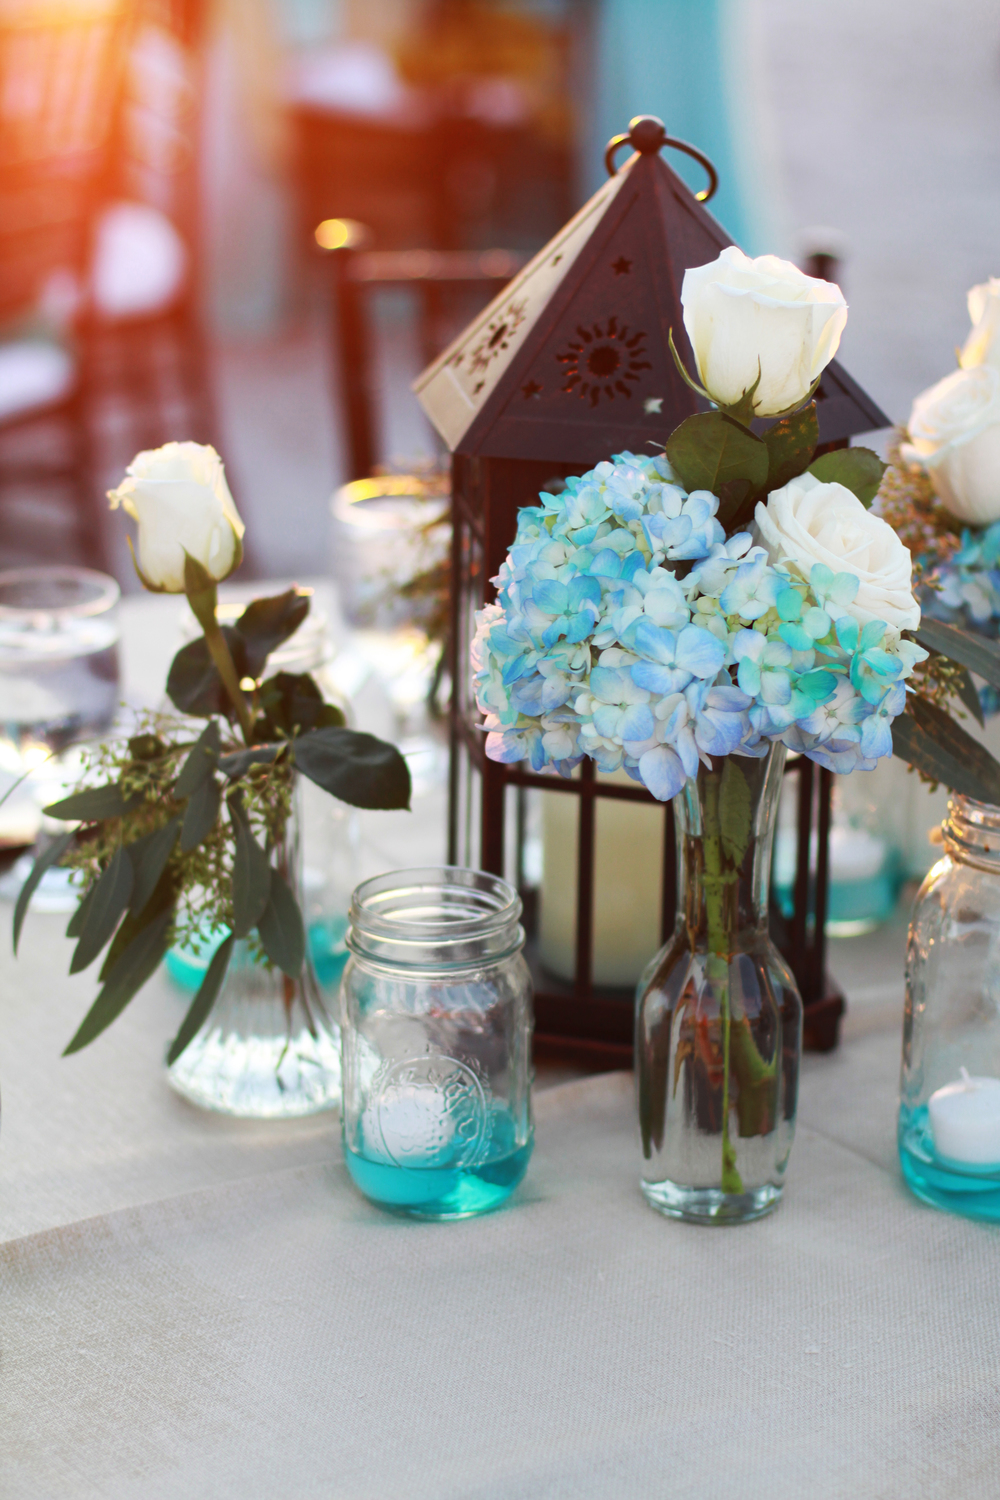 Centerpieces included lanterns surrounded by mason jars of flowers and floating candles in tinted water